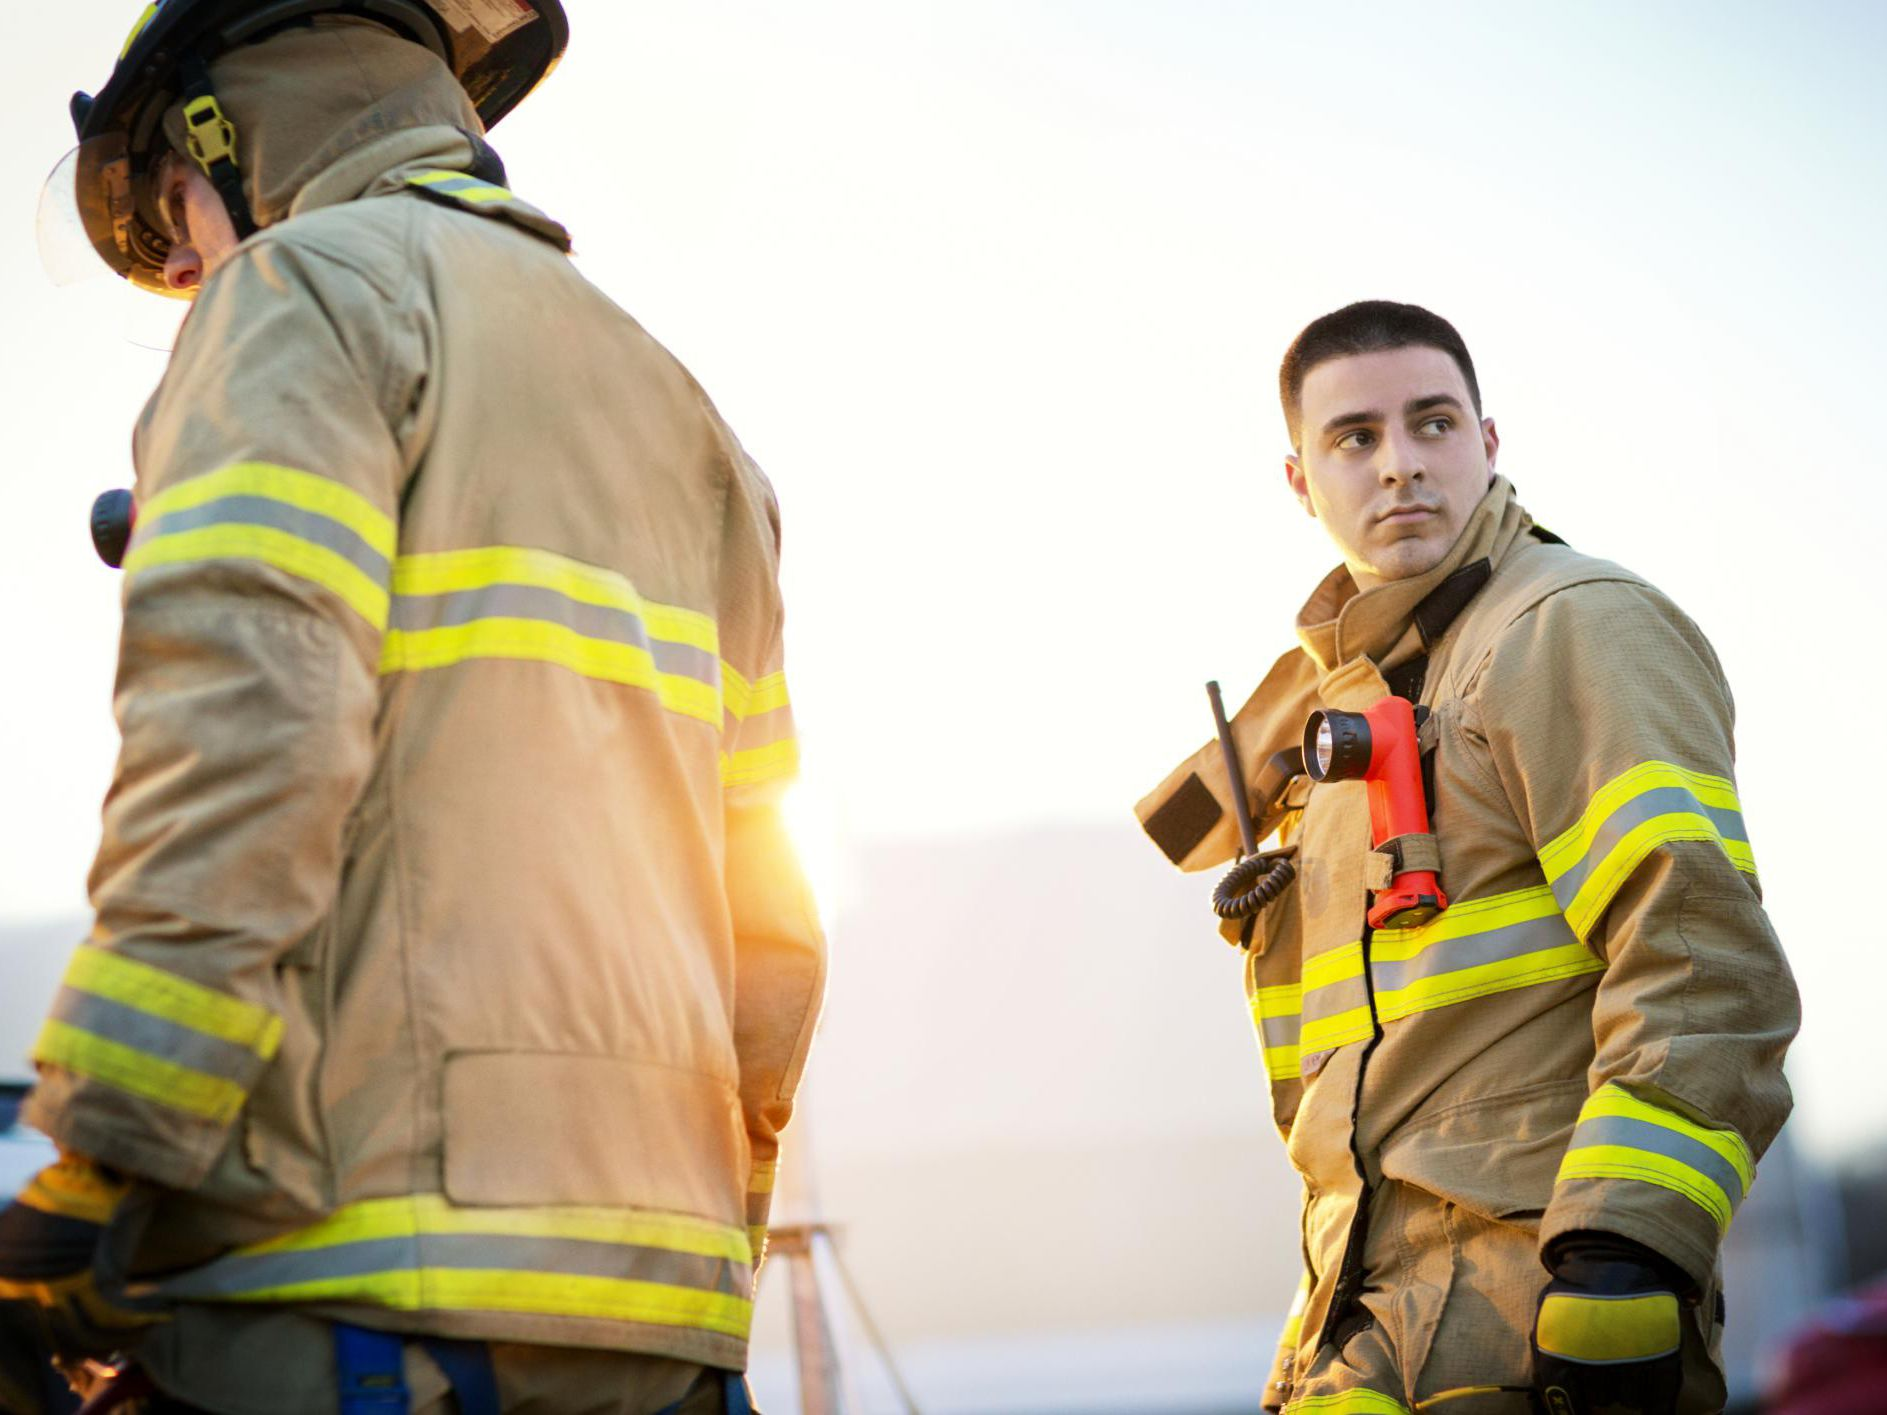 Tips for Answering Firefighter Interview Questions